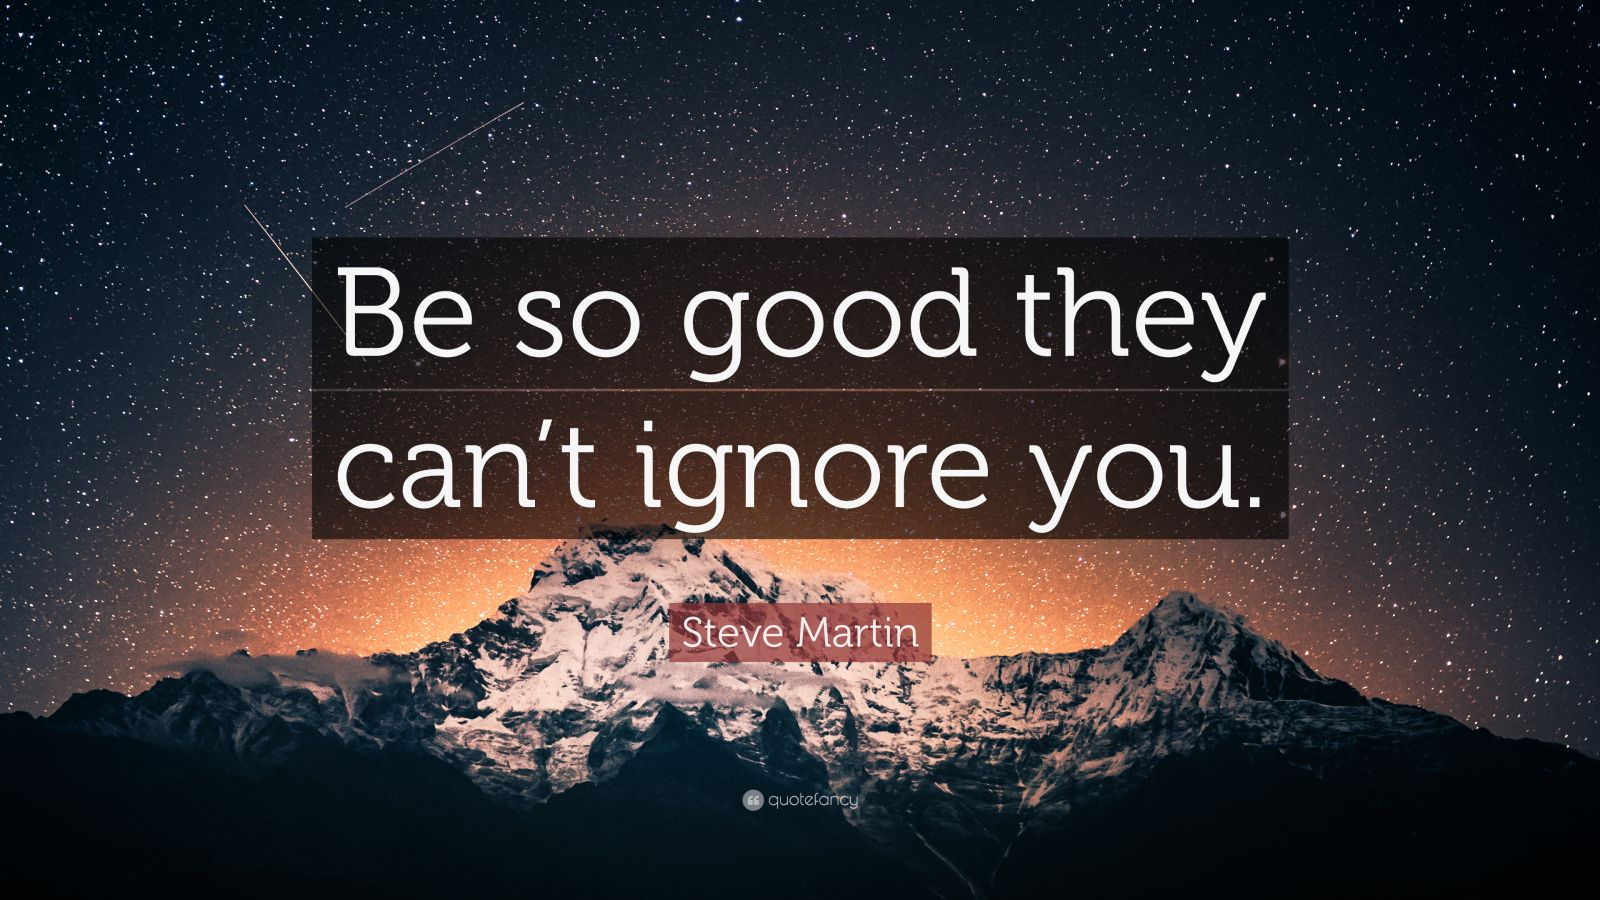 Motivational Football Quotes Wallpaper Steve Martin Quote Be So Good They Can T Ignore You